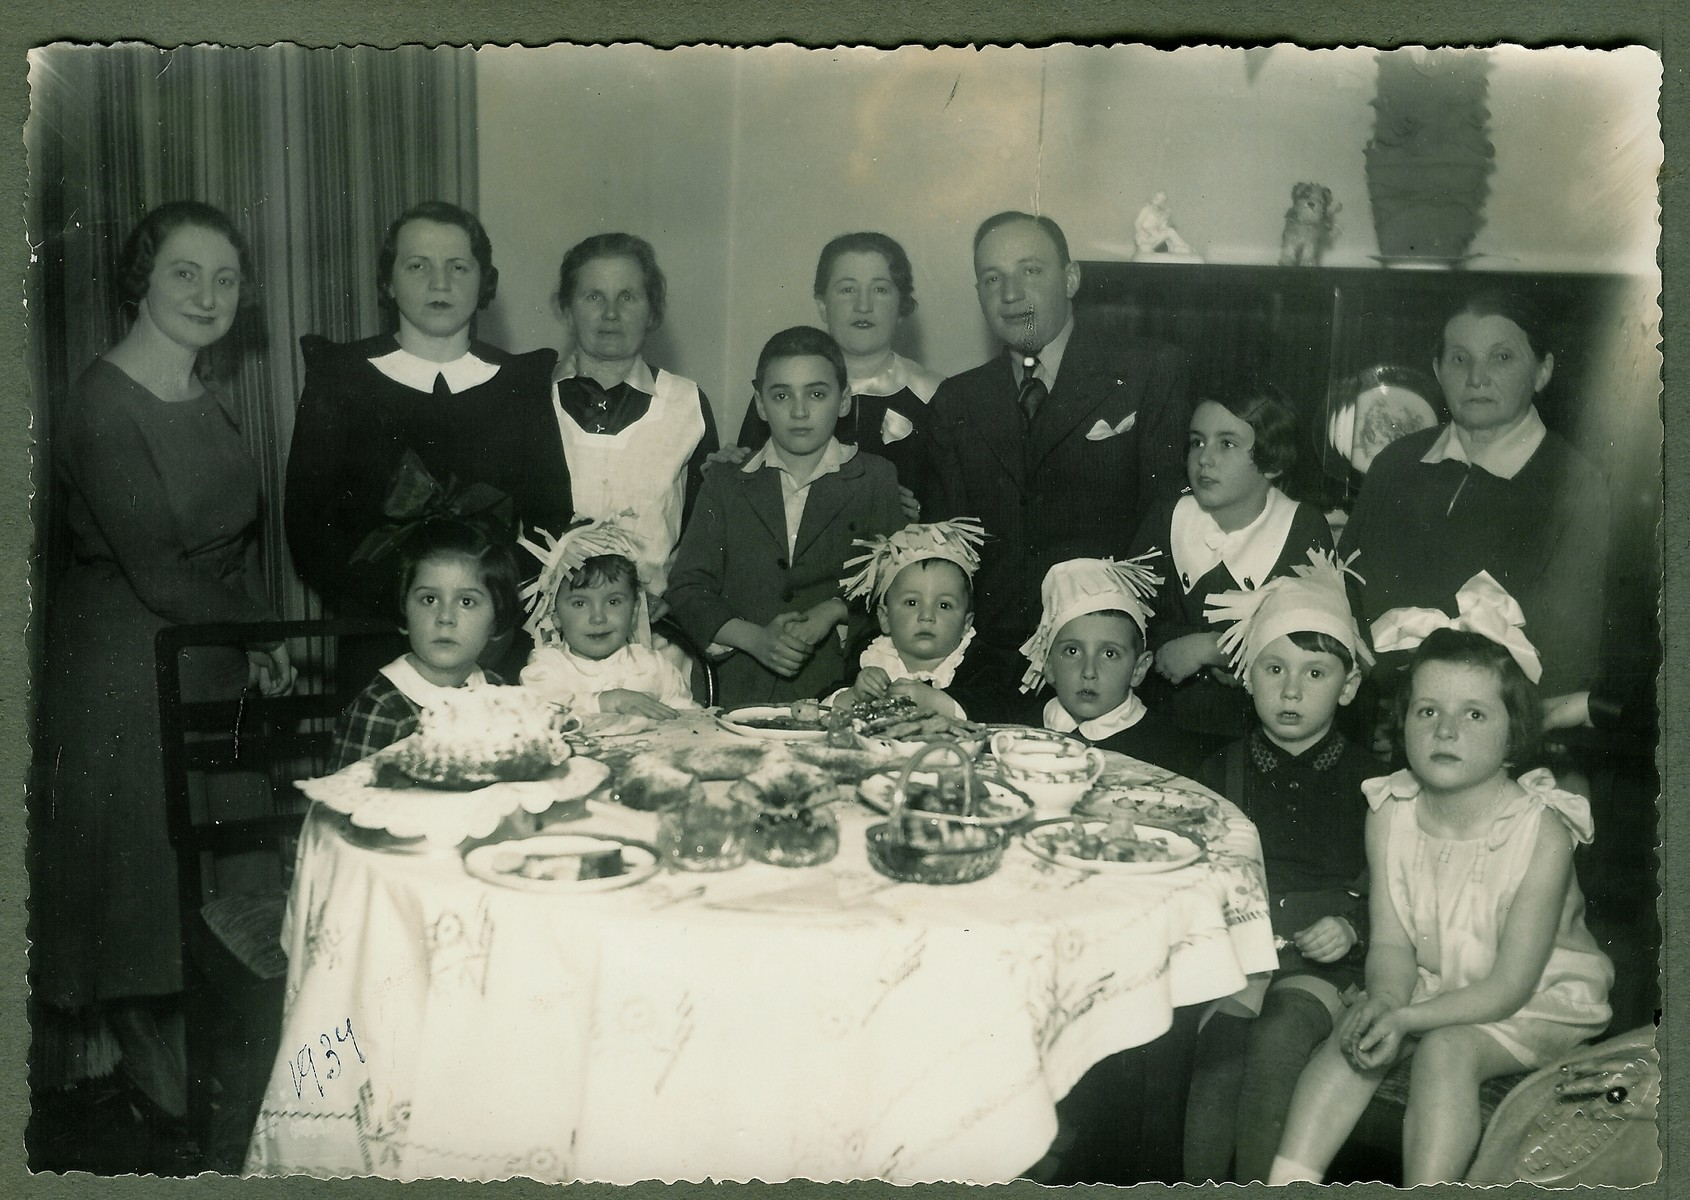 Young children accompanied by their mothers attend a birthday party.  Seated from left to right are Renata (?), Aleksandras Shtromas, Liova Shtrom, Dmitri Kopelman, Mulik Trotzky, Irena Veisaite.  Standing from left to right are unknown, Sonia Veis, nanny of Aleksandras Shtromas, Waldemar Ginsburg, Edith Shtromiene, Ovsey Shtrom, Margarita Shtromaite, and Chaya Shtromiene.